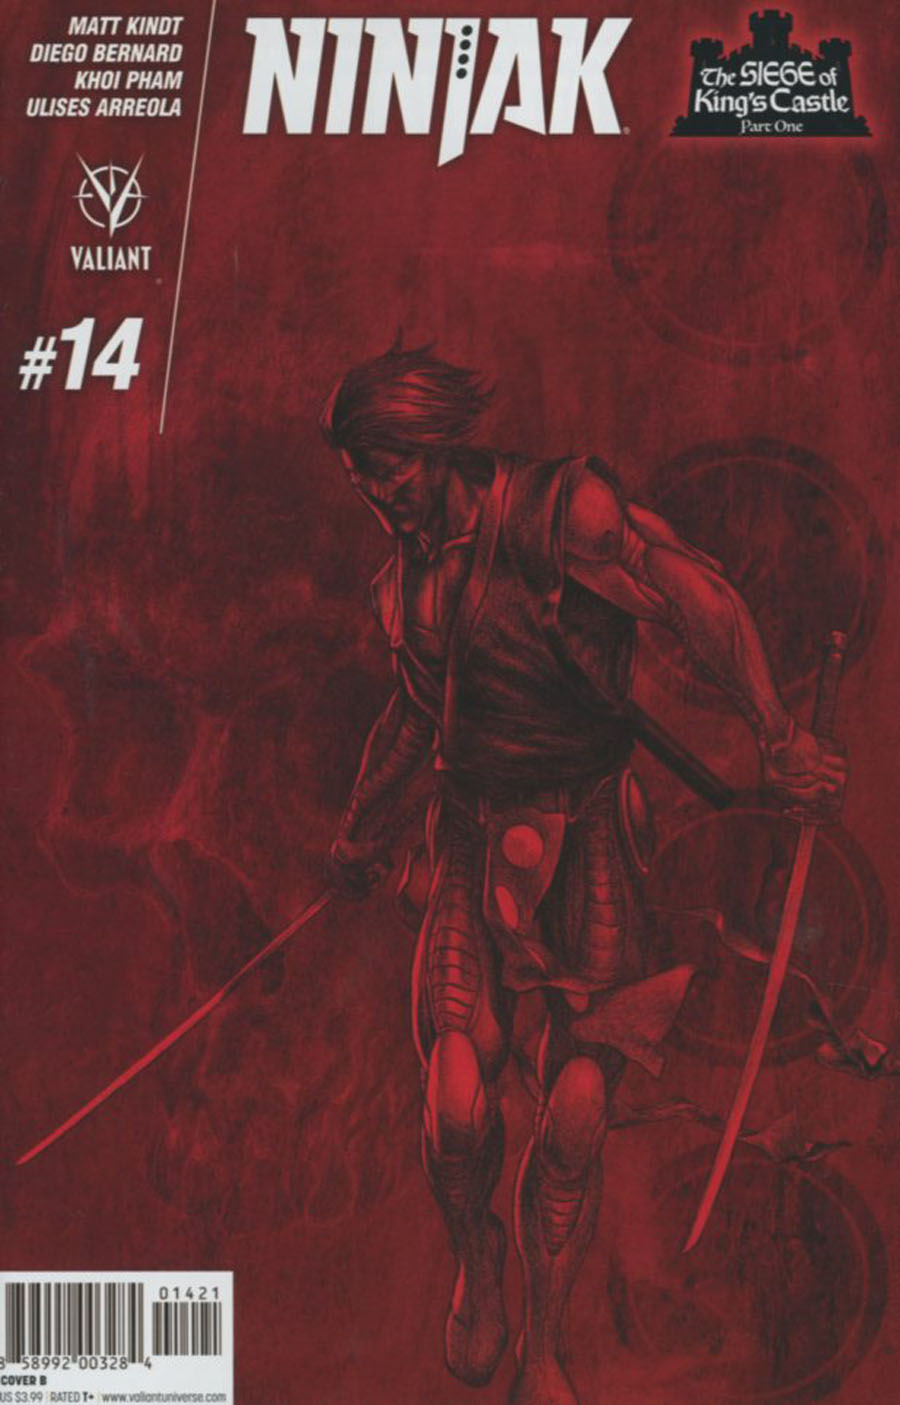 Ninjak Vol 3 #14 Cover B Variant Mike Choi Cover